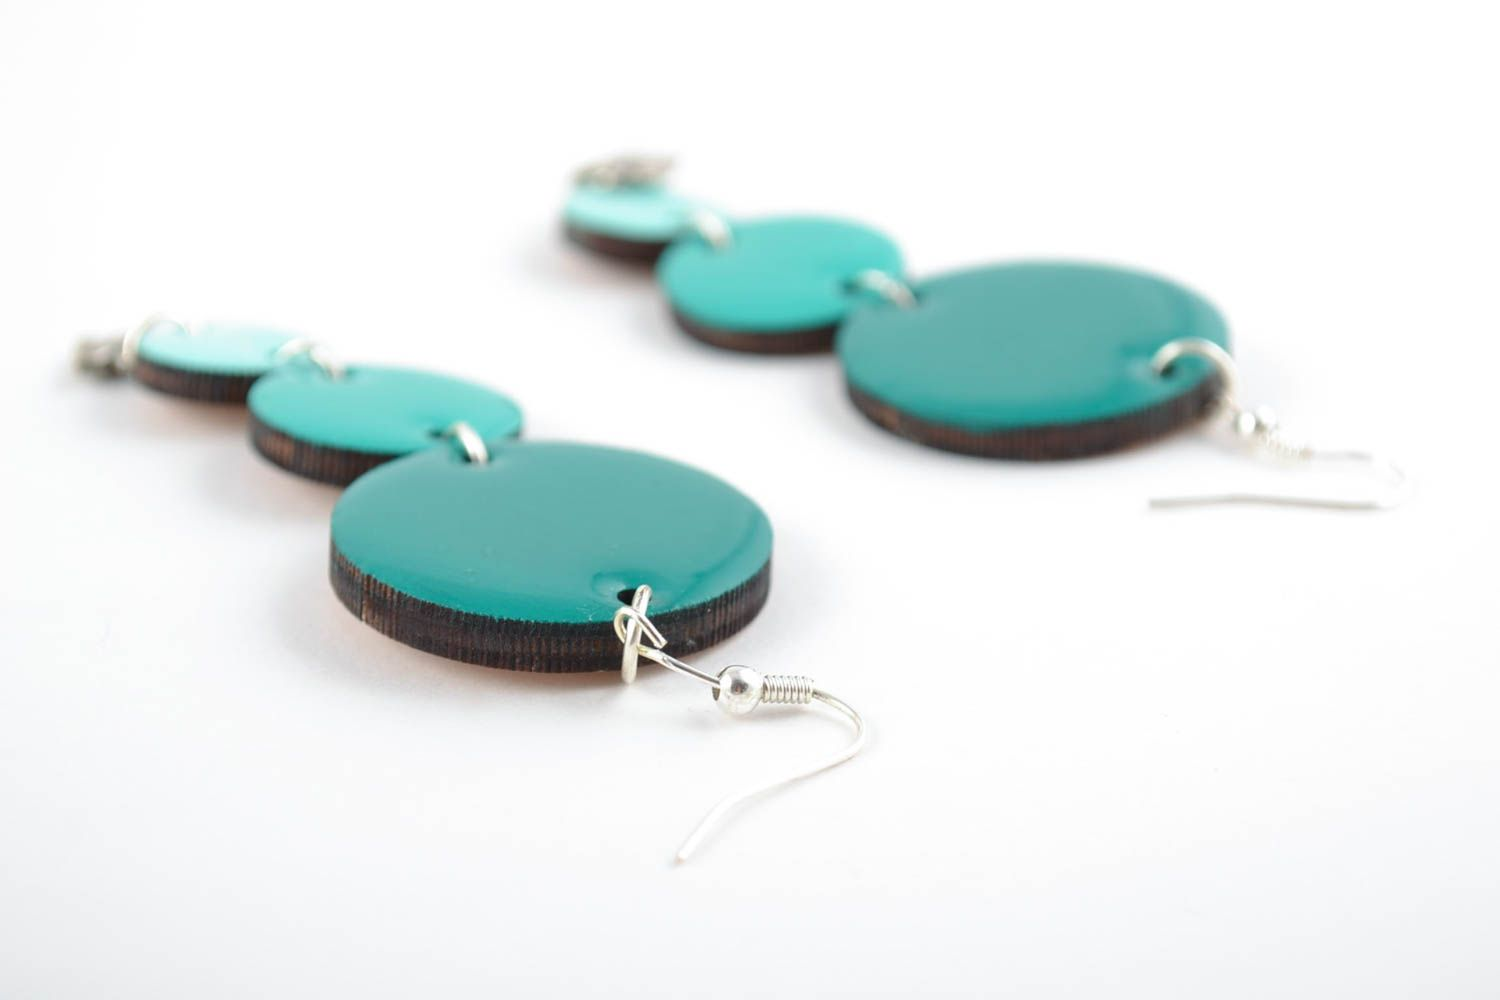 Handmade earrings made of wood and coated with epoxy resin turquoise color photo 3